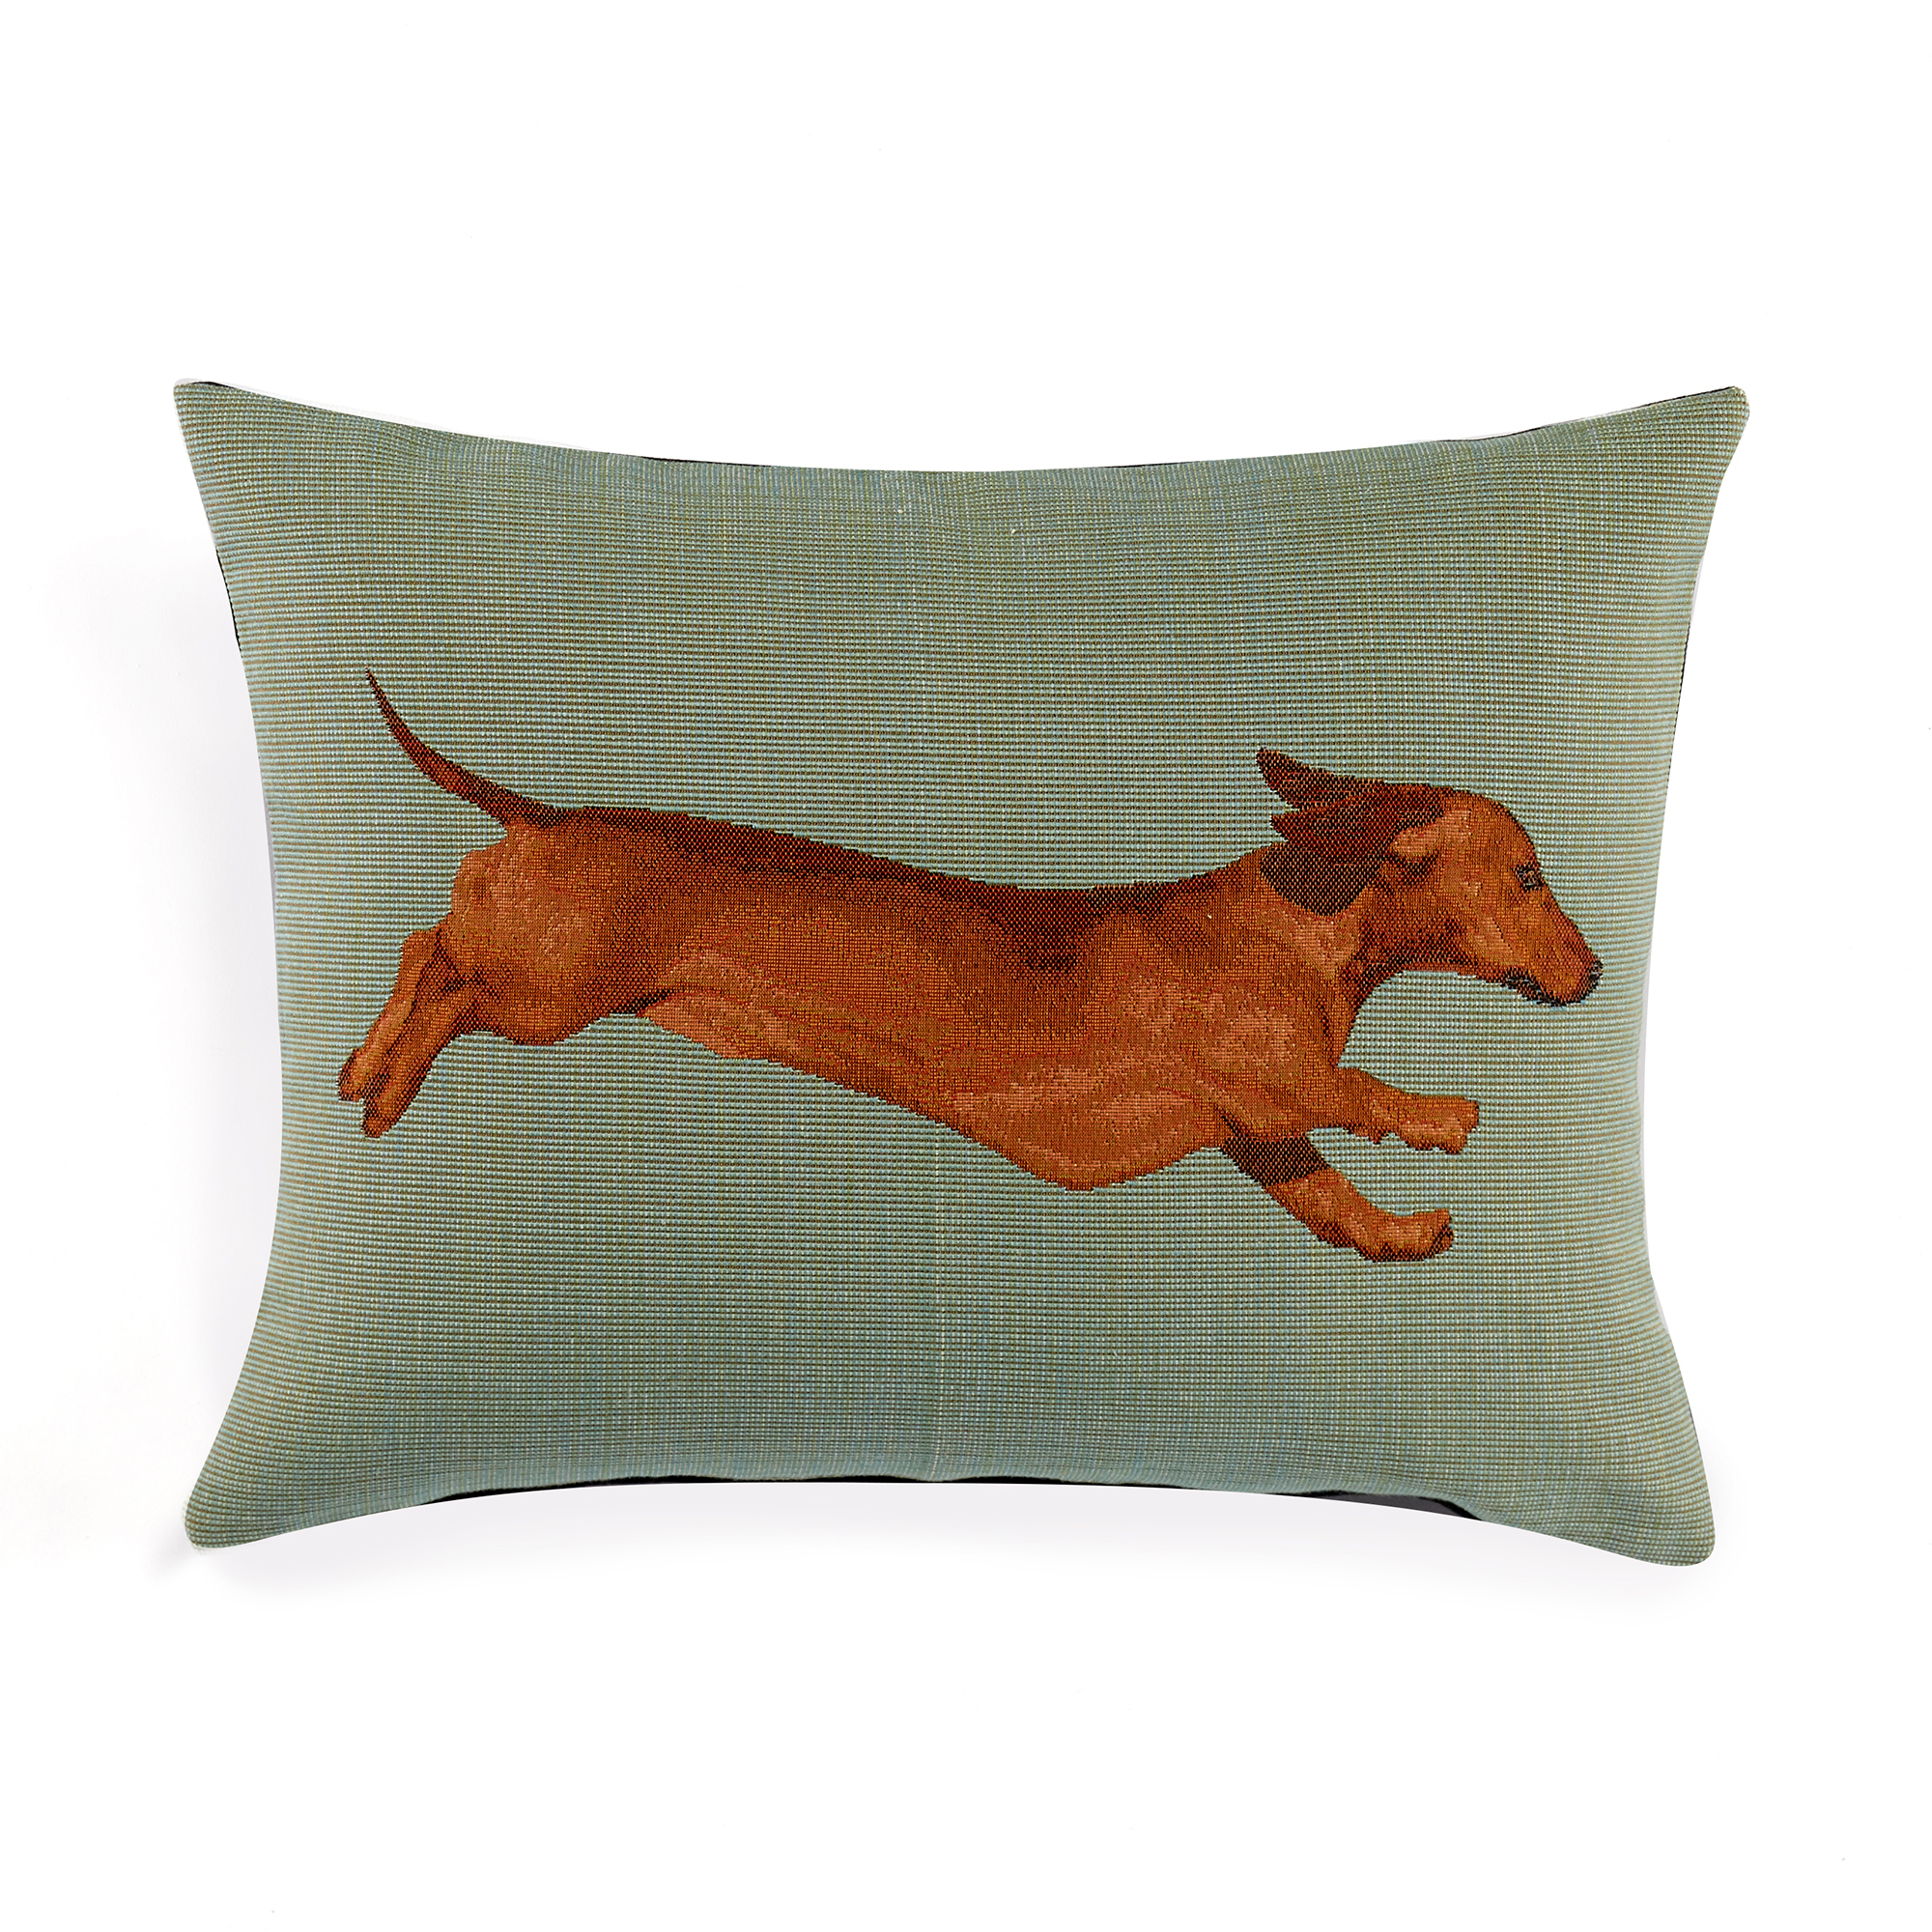 Dachshund Tapestry Pillows, Lumbar